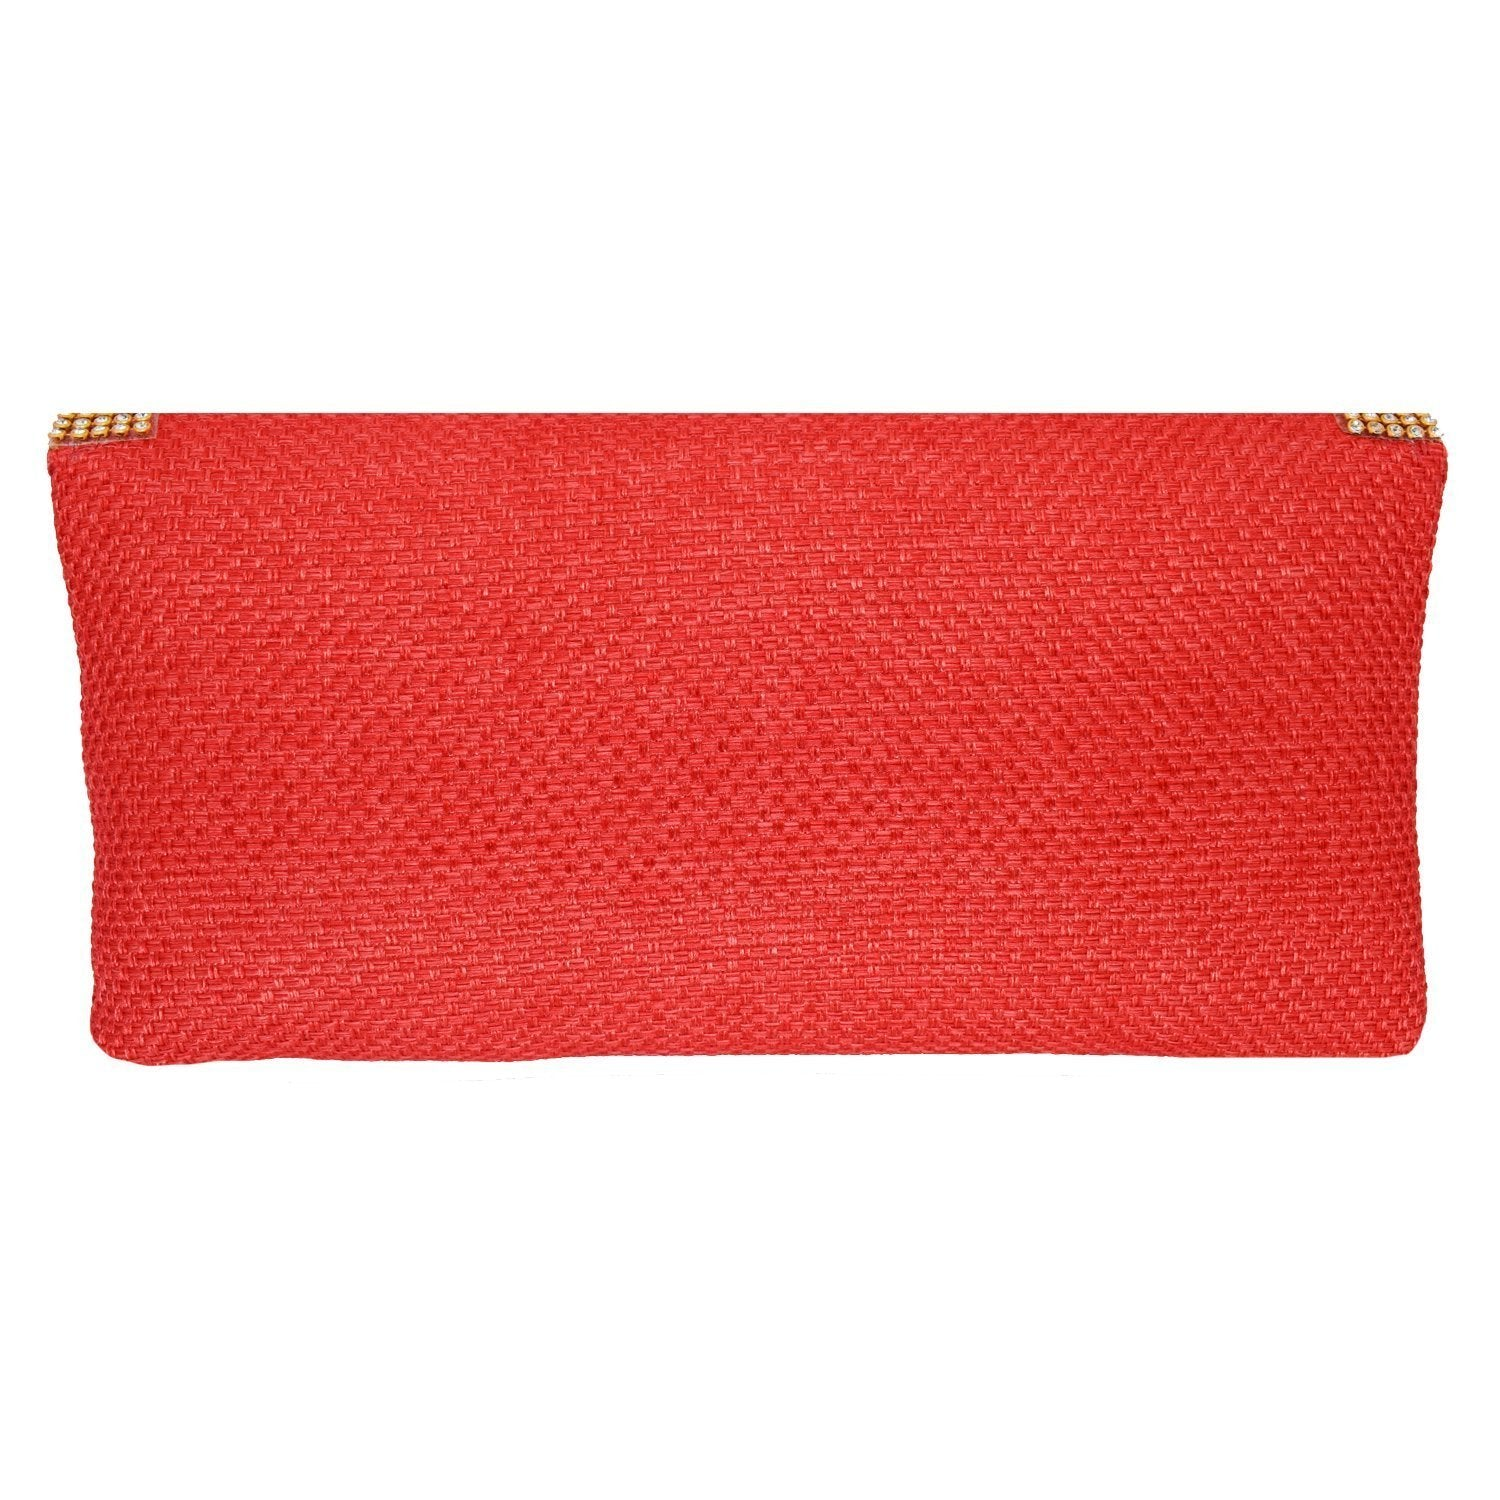 Party Ethnic Clutch Diamond Studded Jute Clutches - Bagaholics Gift